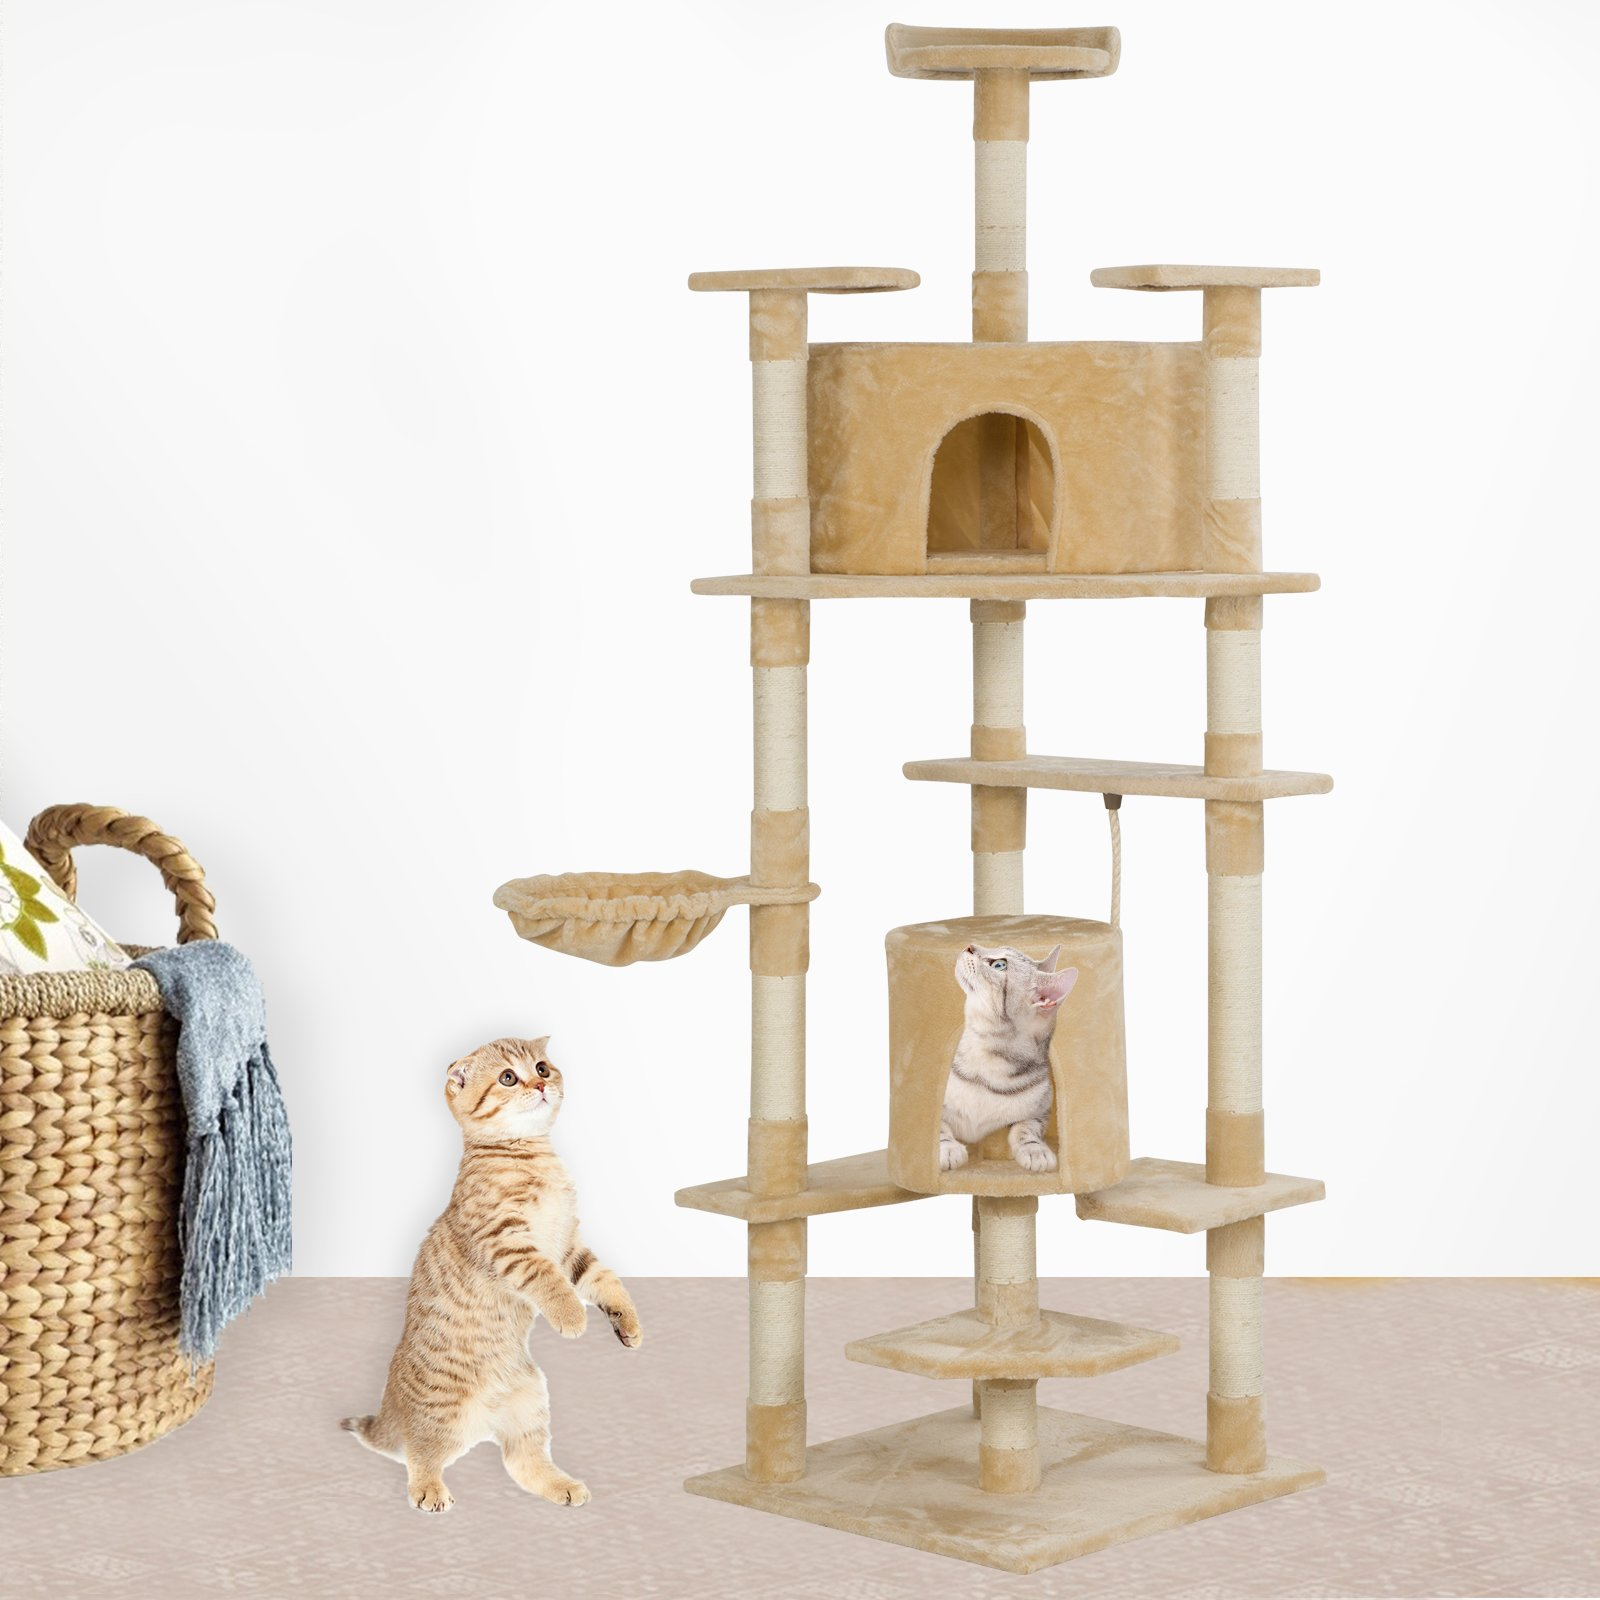 SUNCOO 7 Level Cat Activity Tree and Towers Condo Furniture Scratching Kitty Pet Play House with Hammock and Hanging Toy Beige 78 inches High